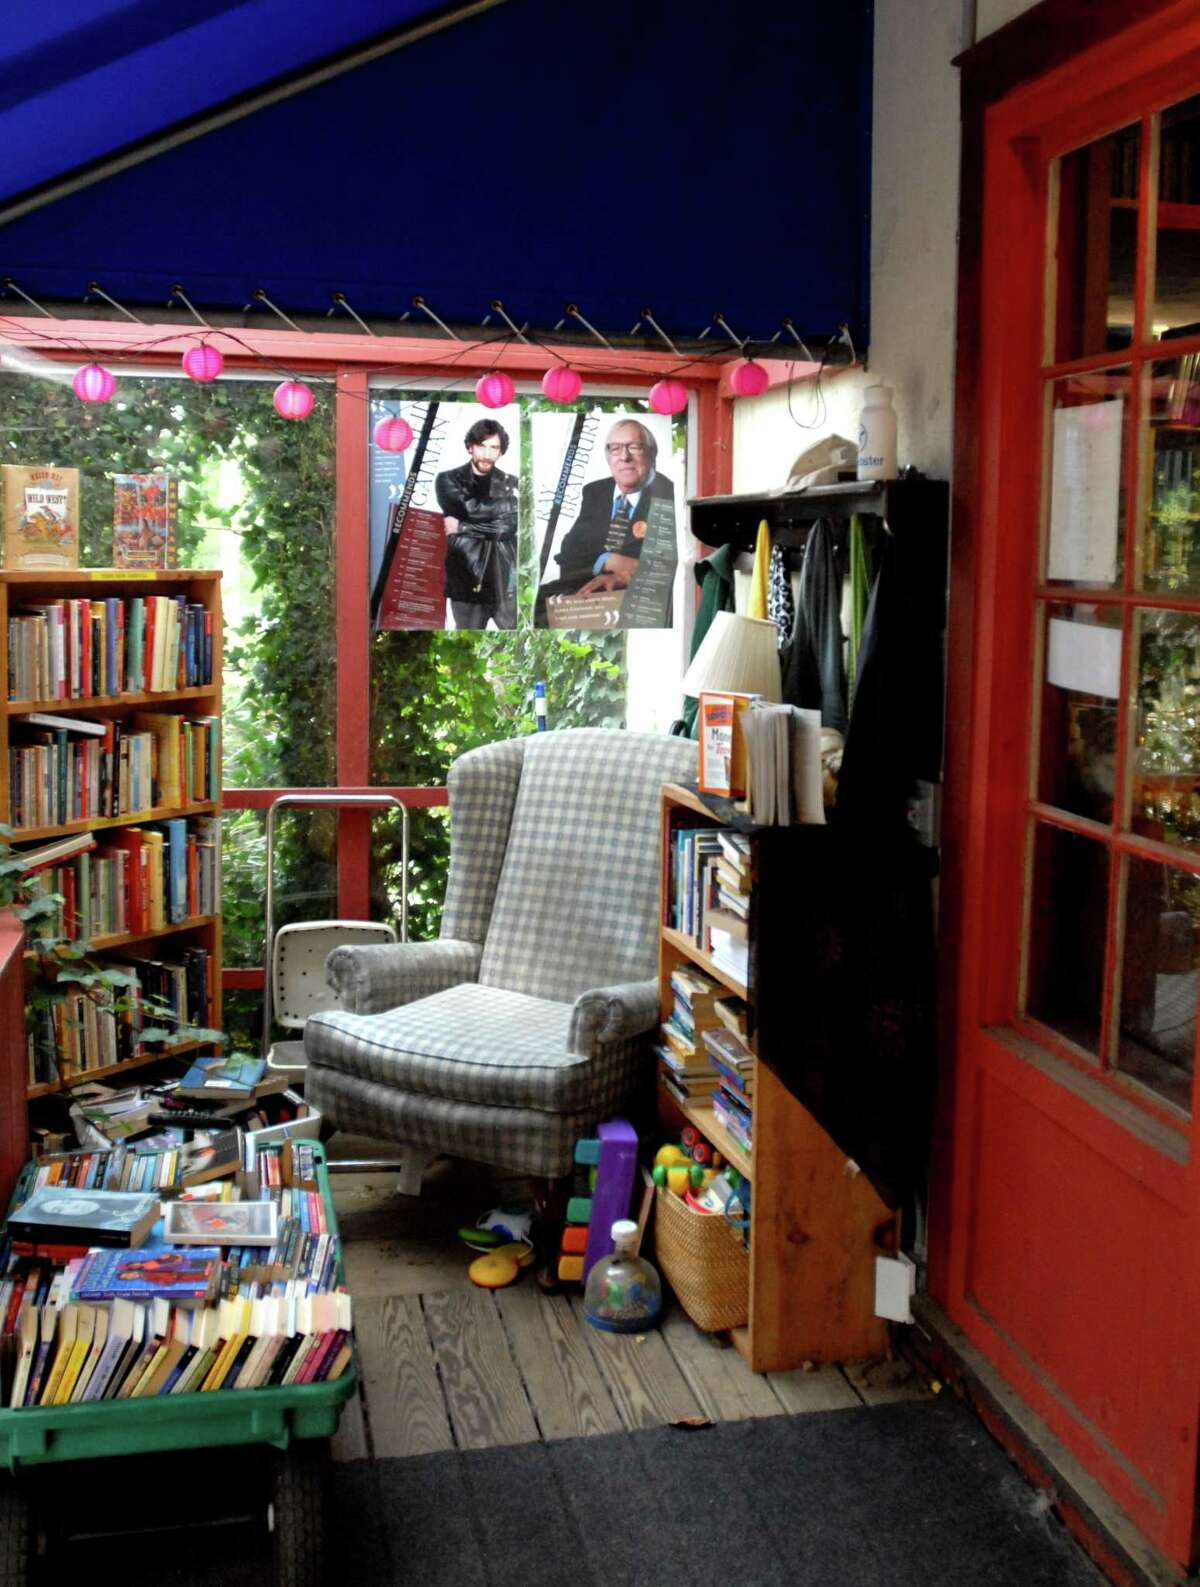 A cozy child-friendly space at the entrance of the Book Barn in Niantic.